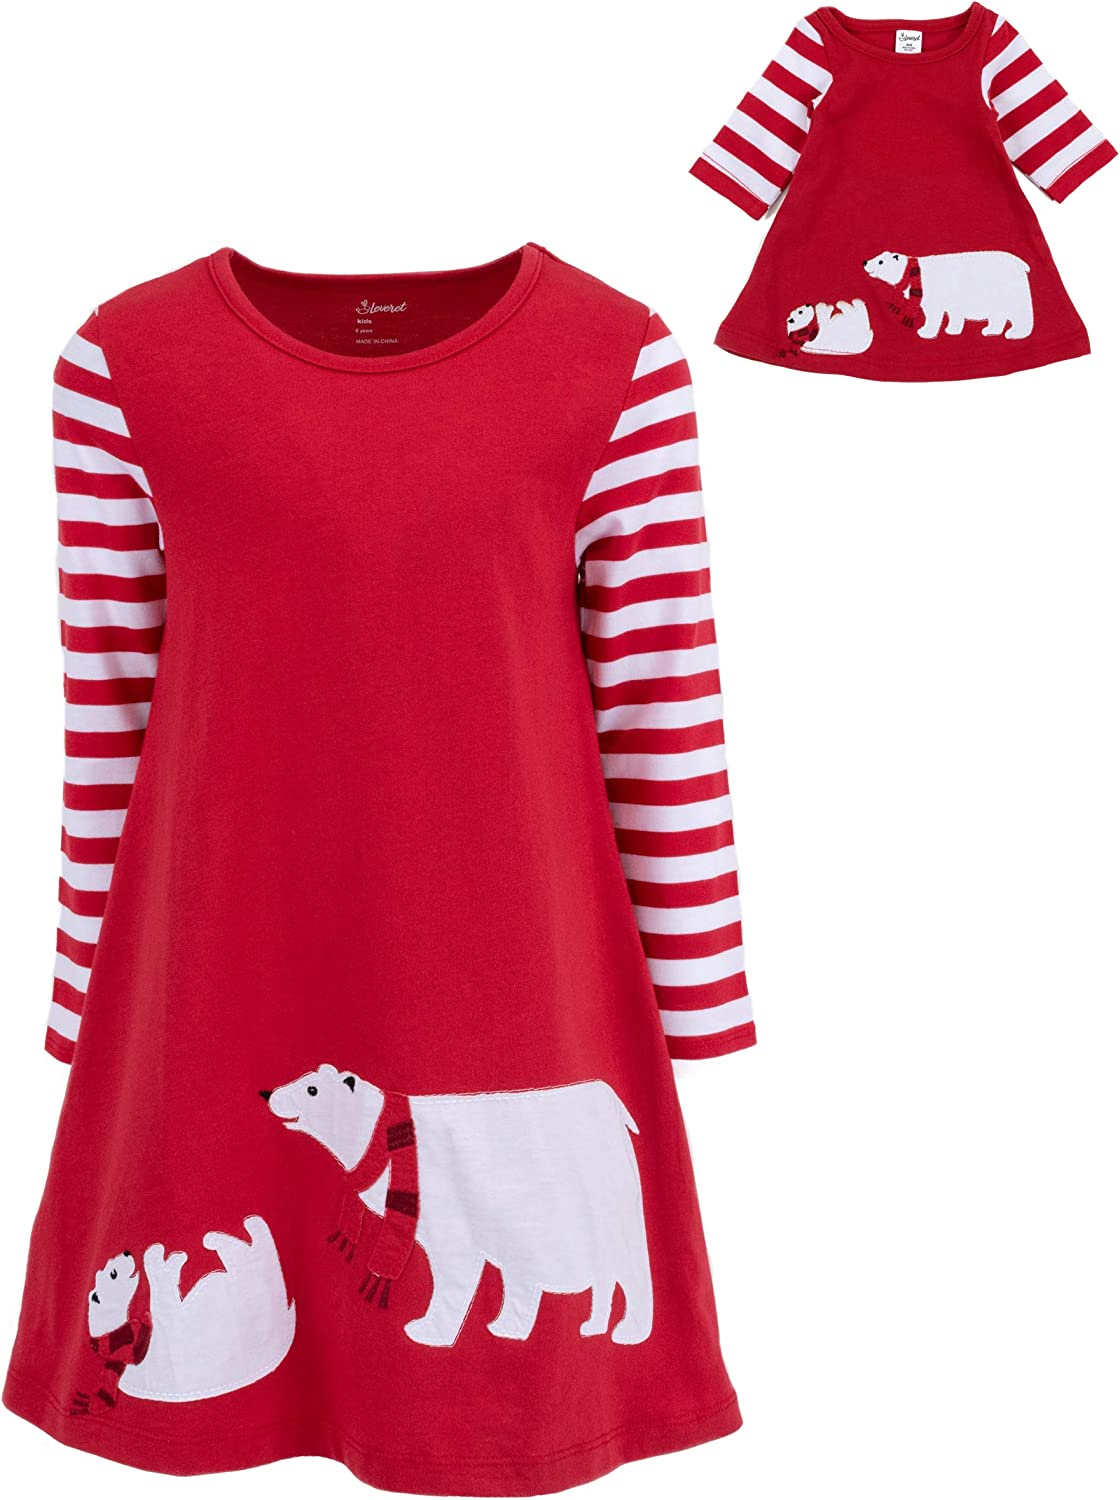 Leveret Kids & Toddler Dress Matching Doll & Girls Dress 100% Cotton Variety of Styles (Size 2-14 Years)